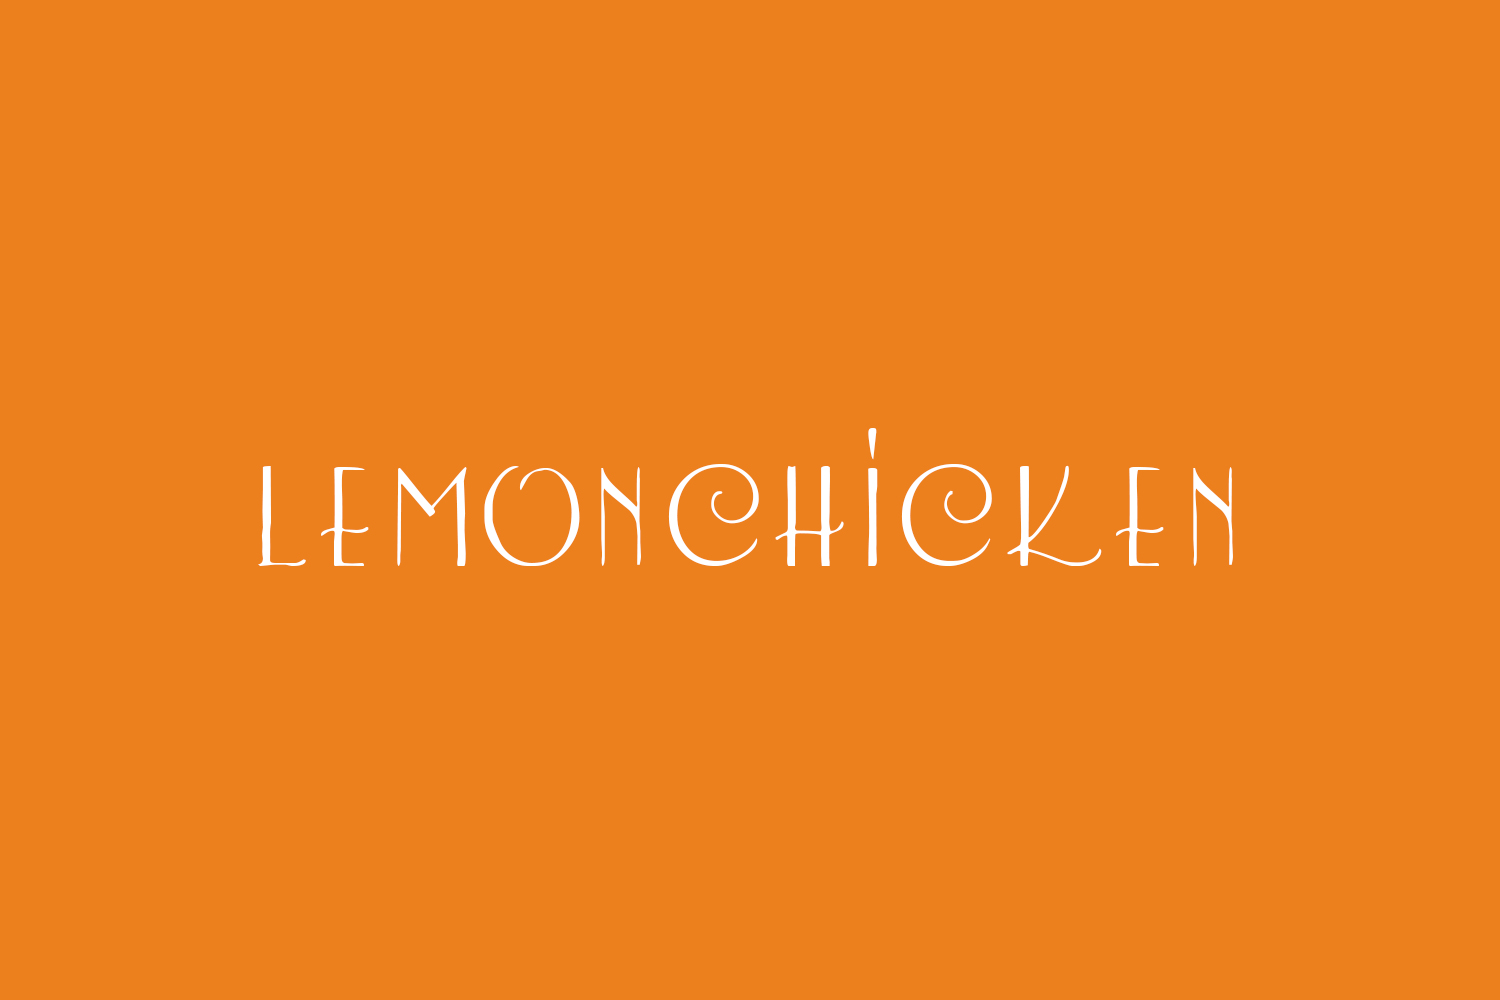 LemonChicken